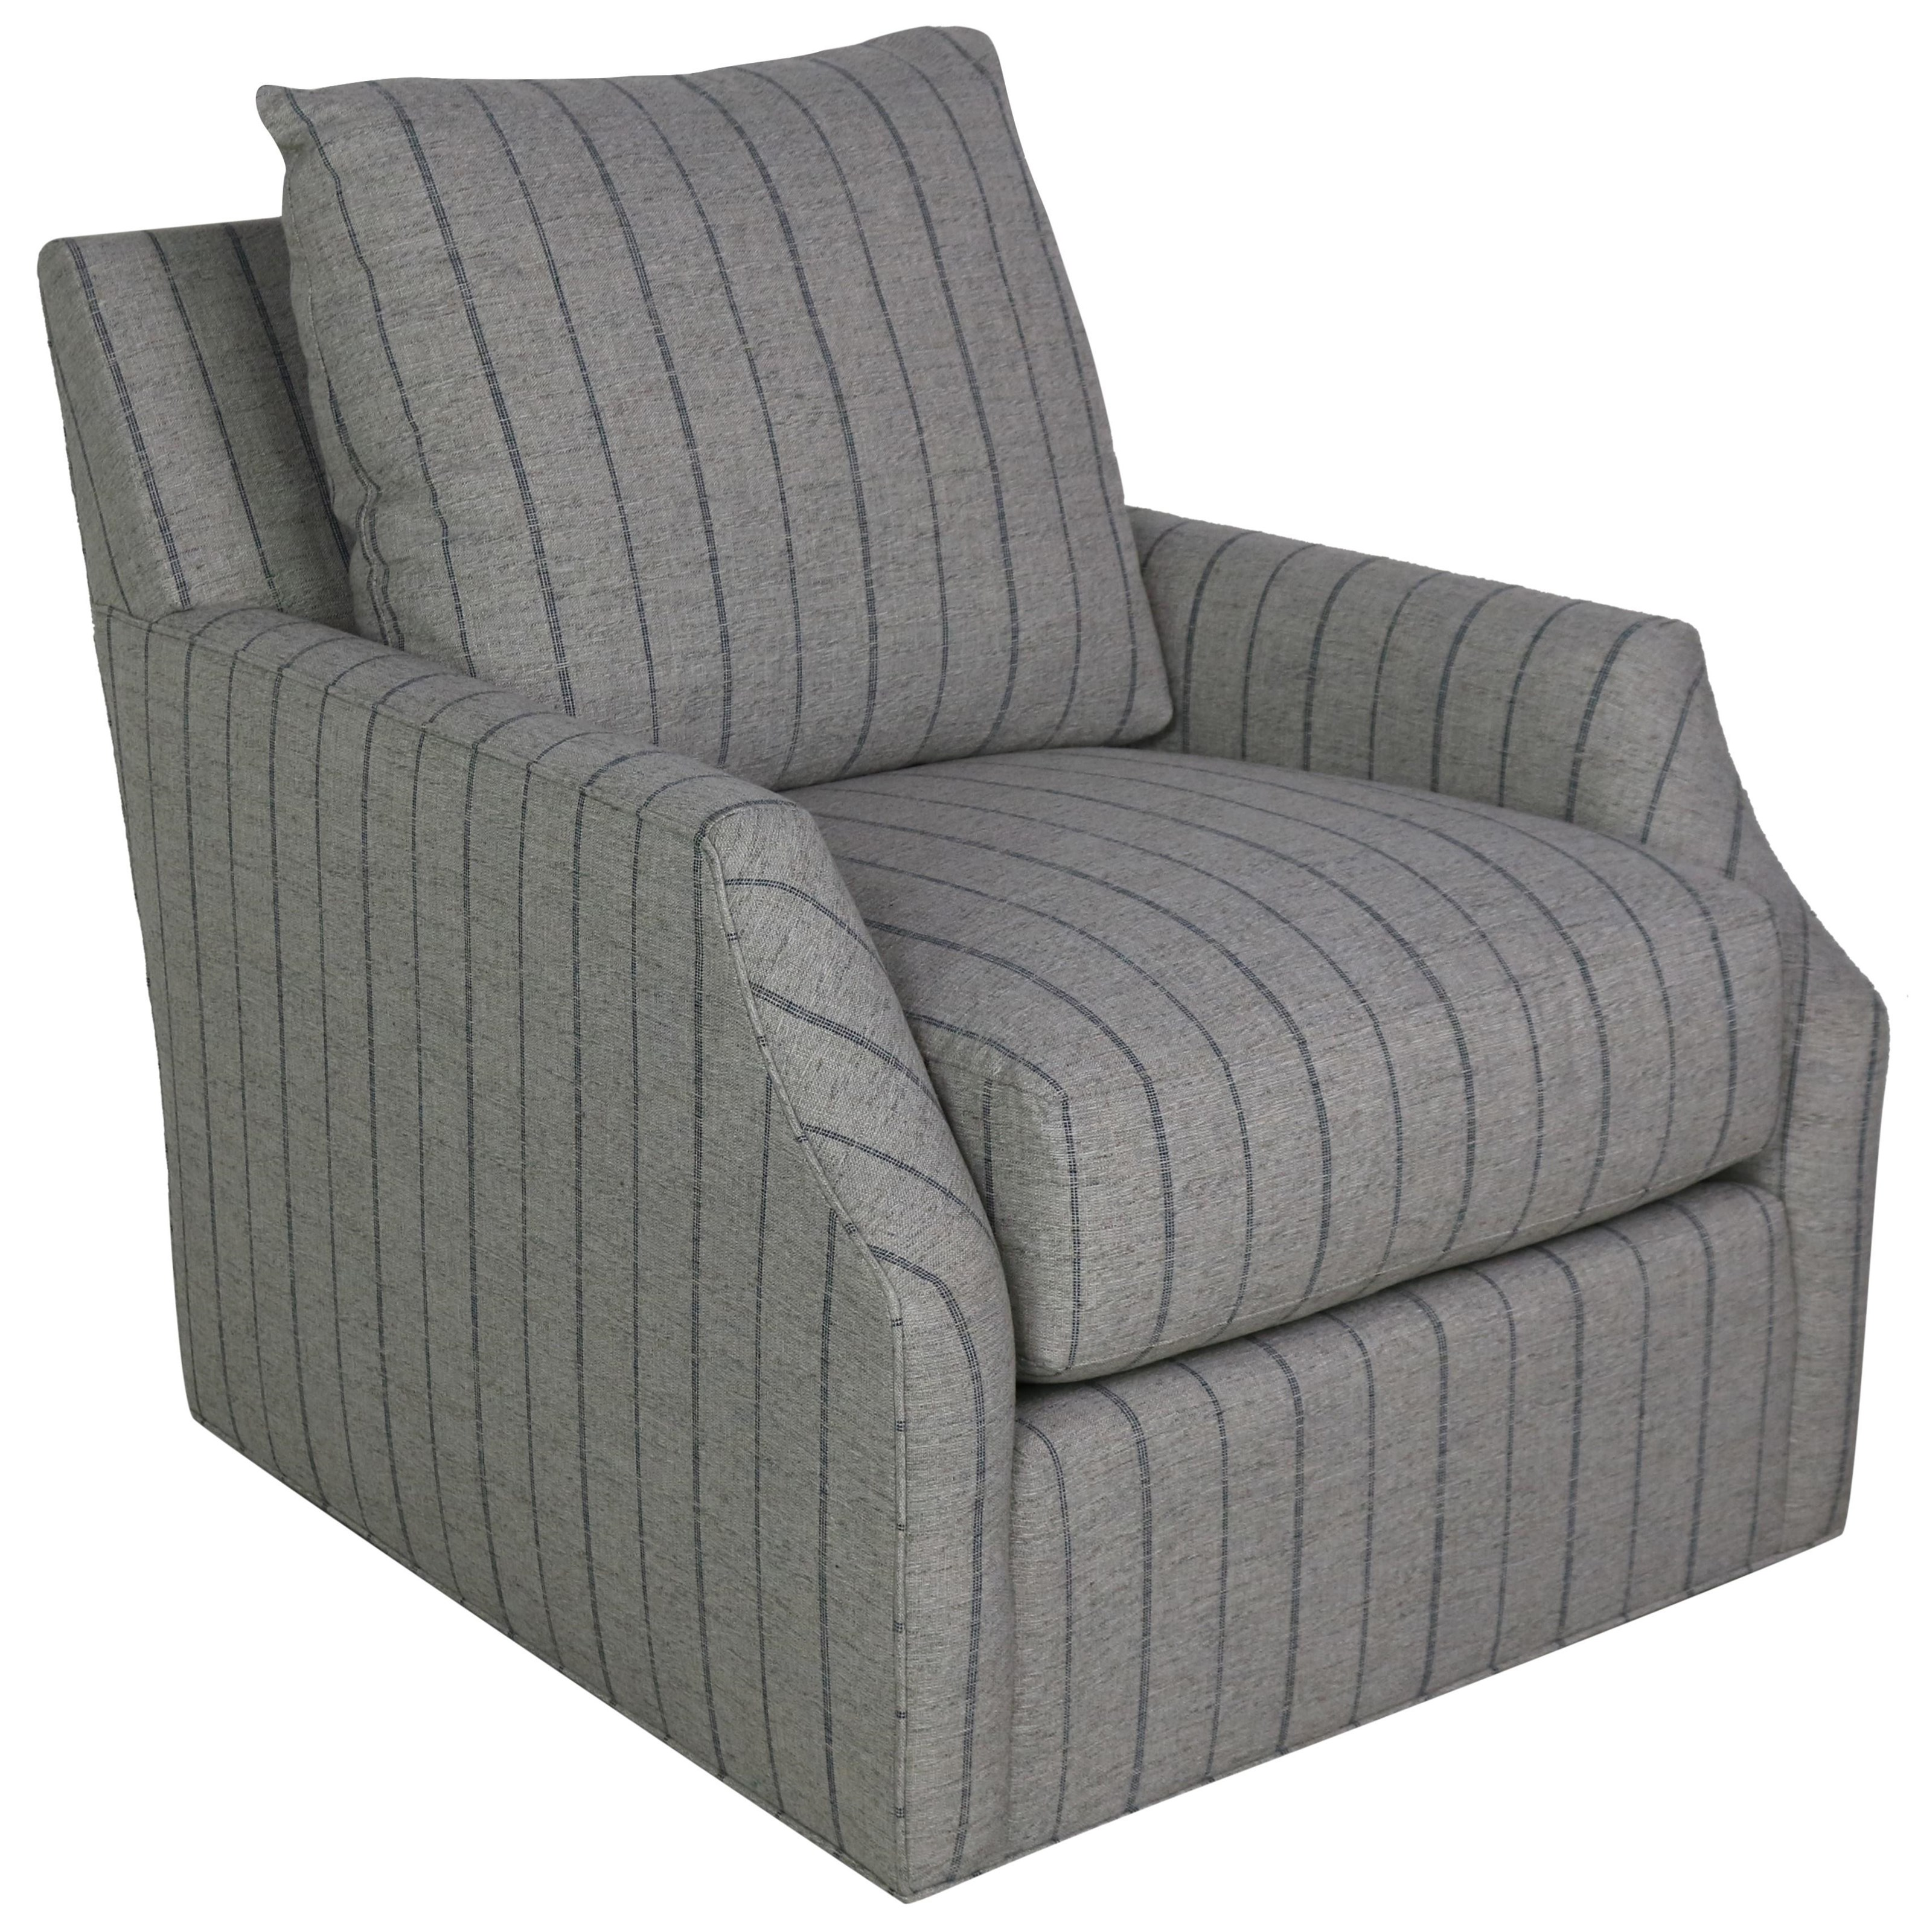 Accent Chairs Swivel Chair by Vanguard Furniture at Sprintz Furniture